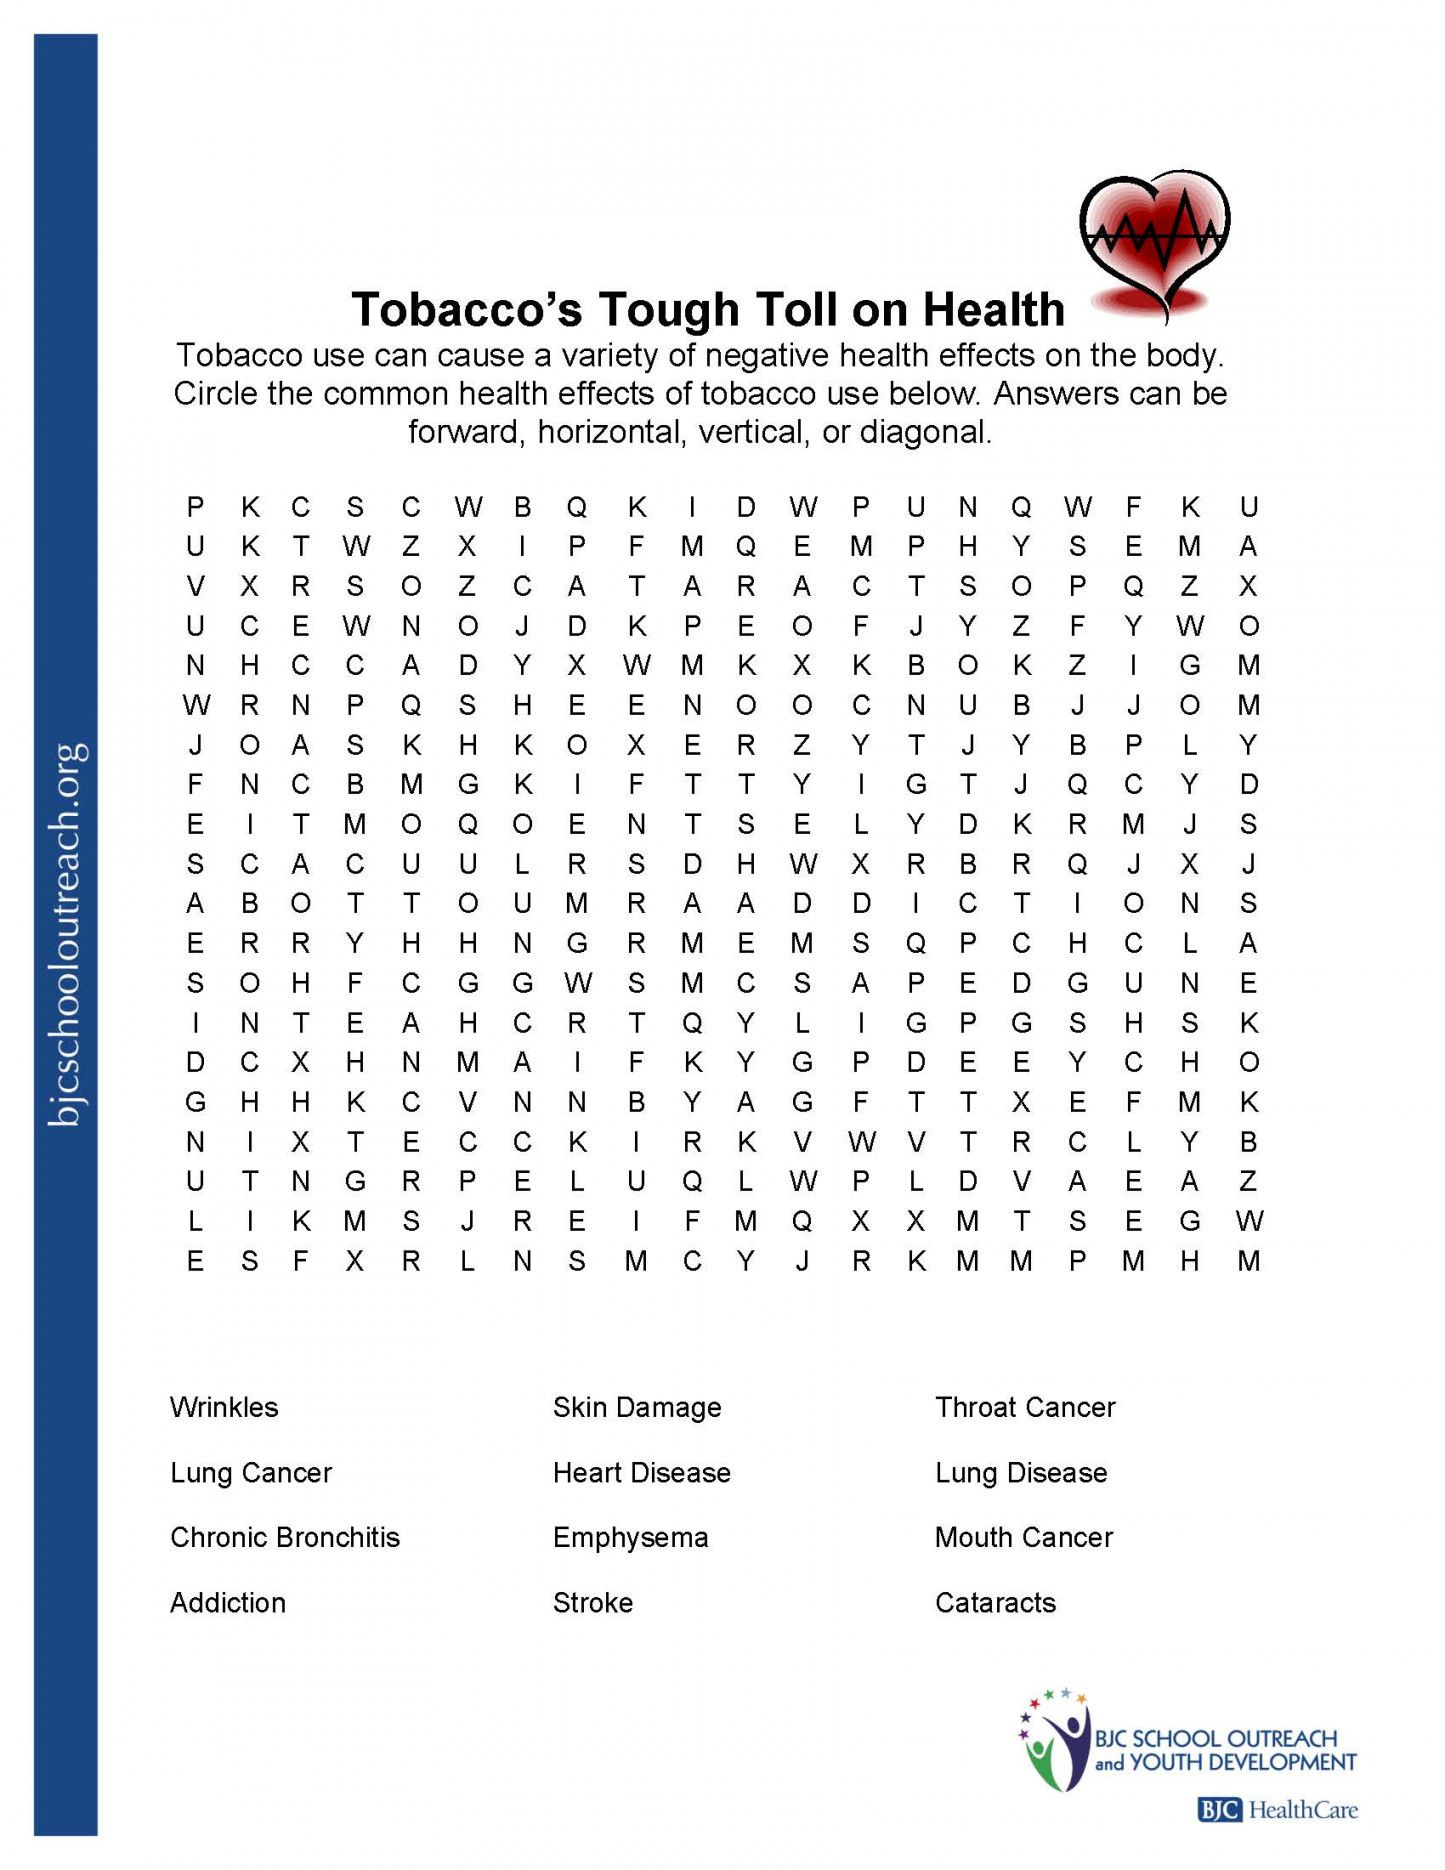 Free Printable Health Worksheets For Middle School | Lostranquillos - Free Printable Health Worksheets For Middle School